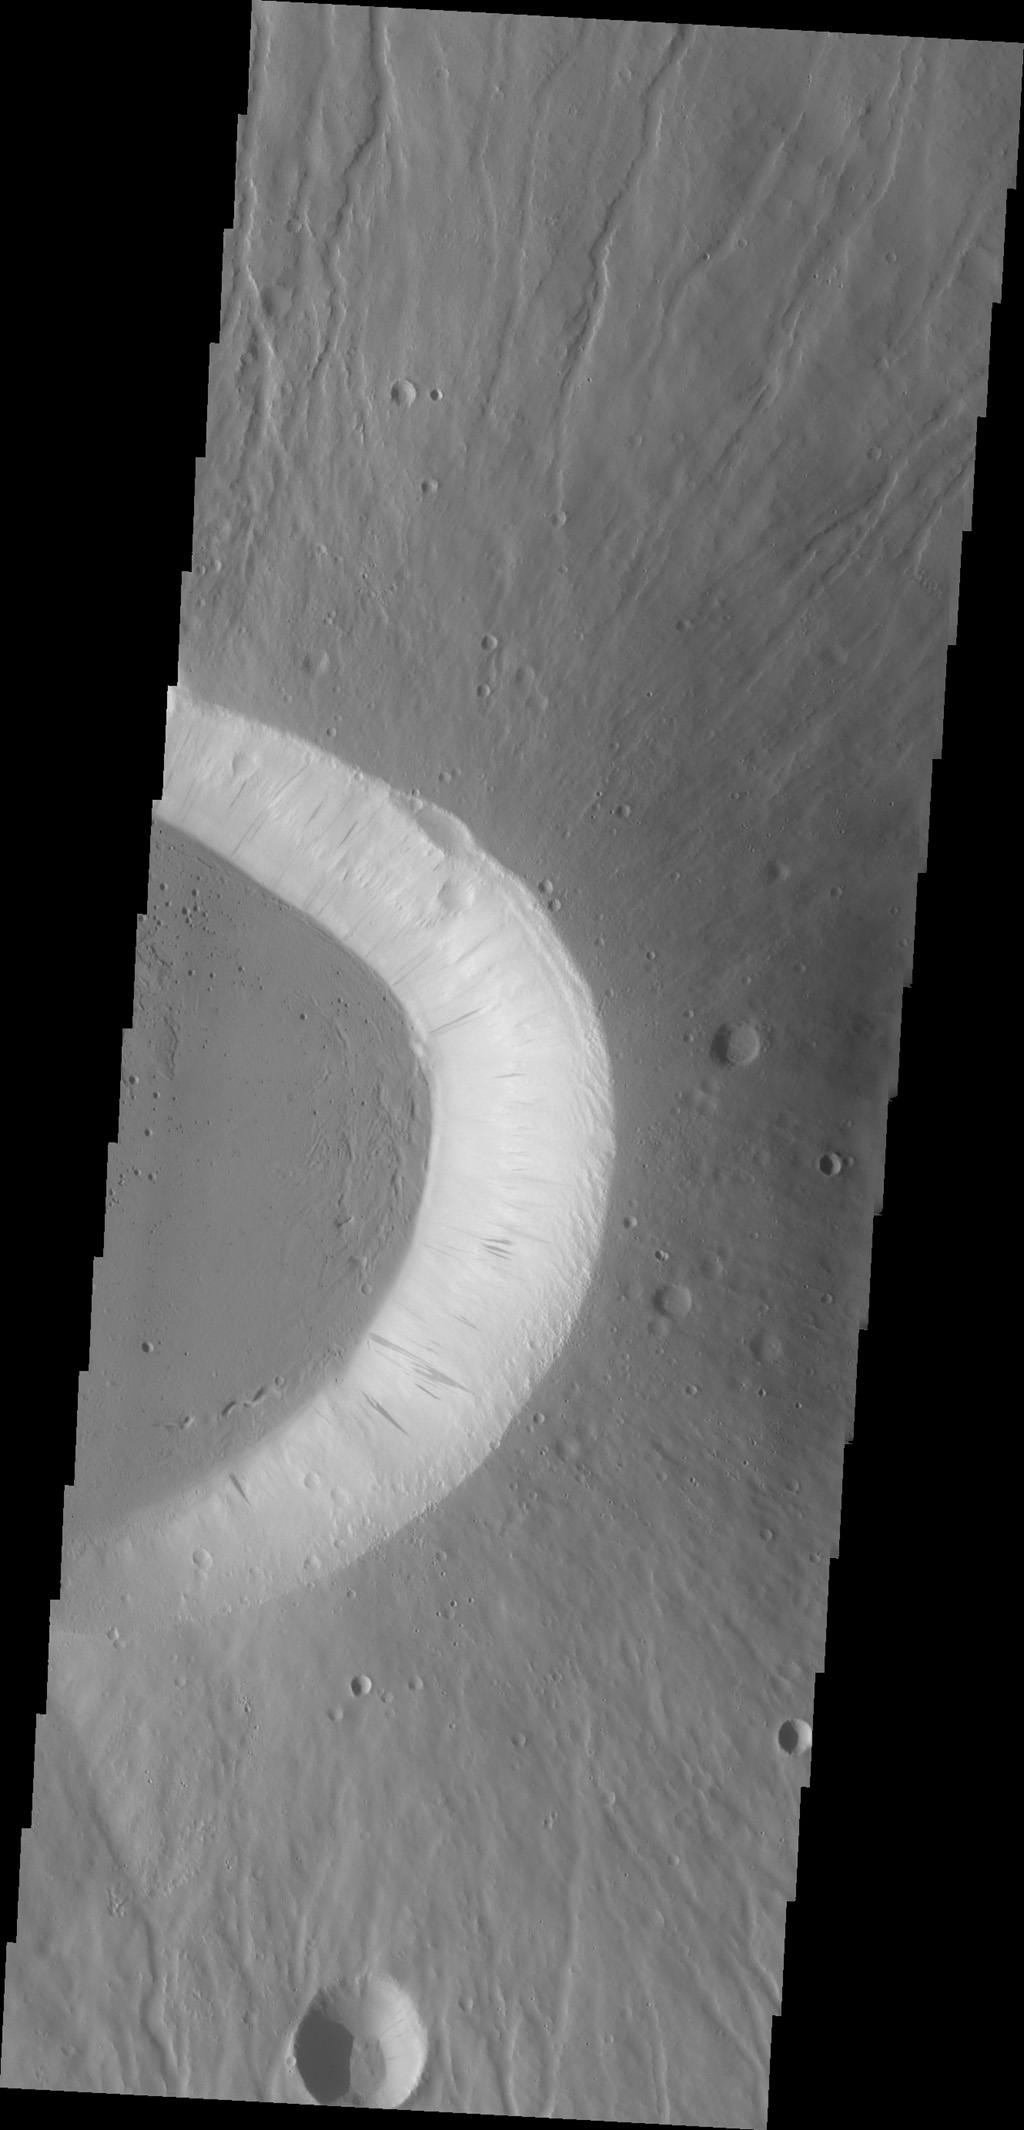 Today's image shows the eastern side of the summit caldera of Ceraunius Tholus as seen by NASA's 2001 Mars Odyssey spacecraft.